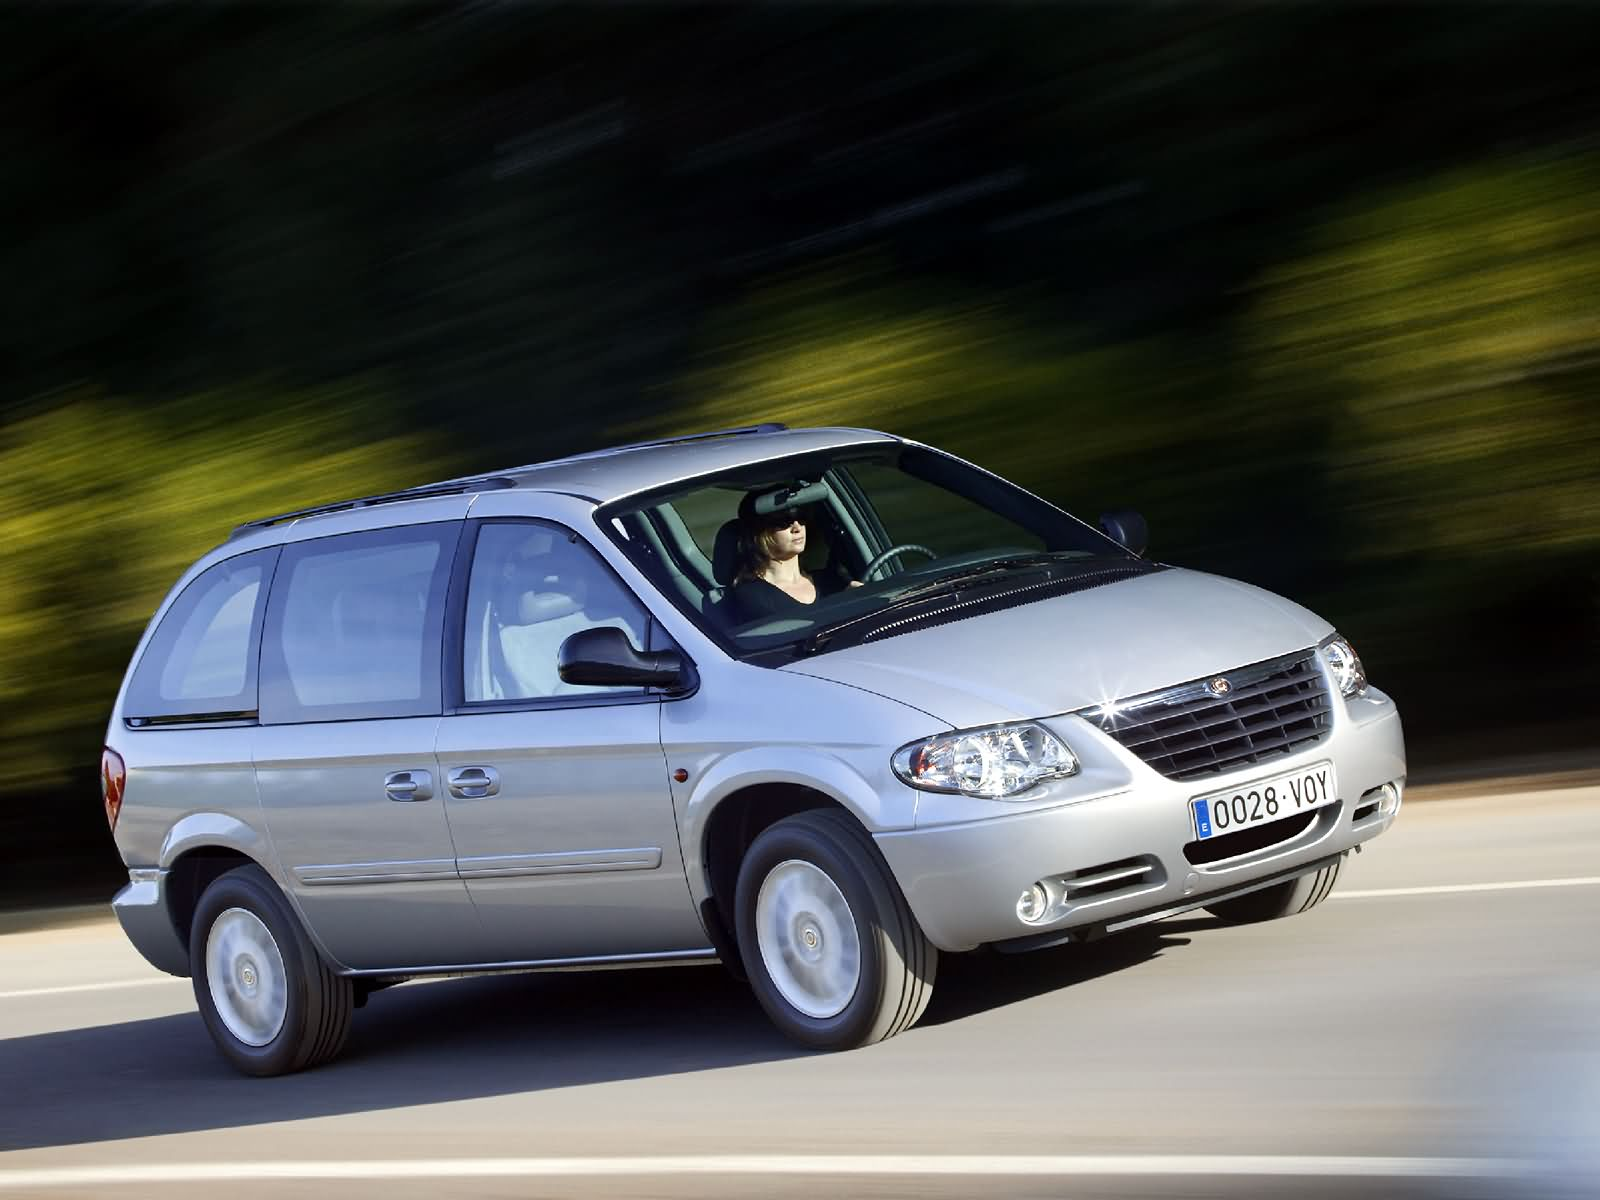 Chrysler Voyager LX 2.8 CRD European Version 2004 5